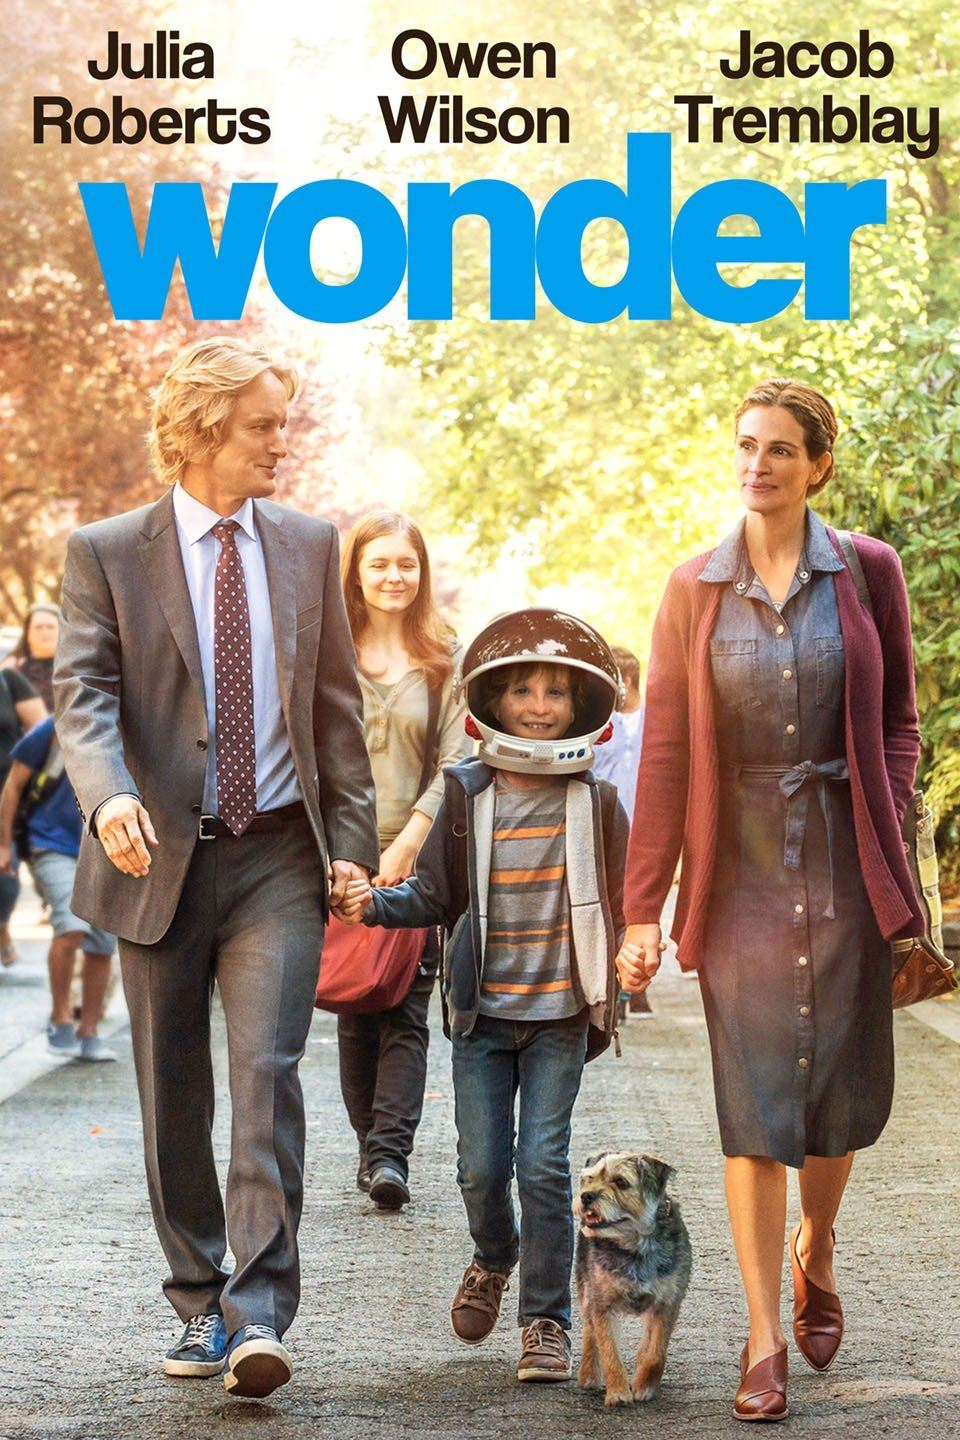 Wonder Movie Mom dad and Child. Owen Wilson, Julia Roberts and Jacob Tremblay